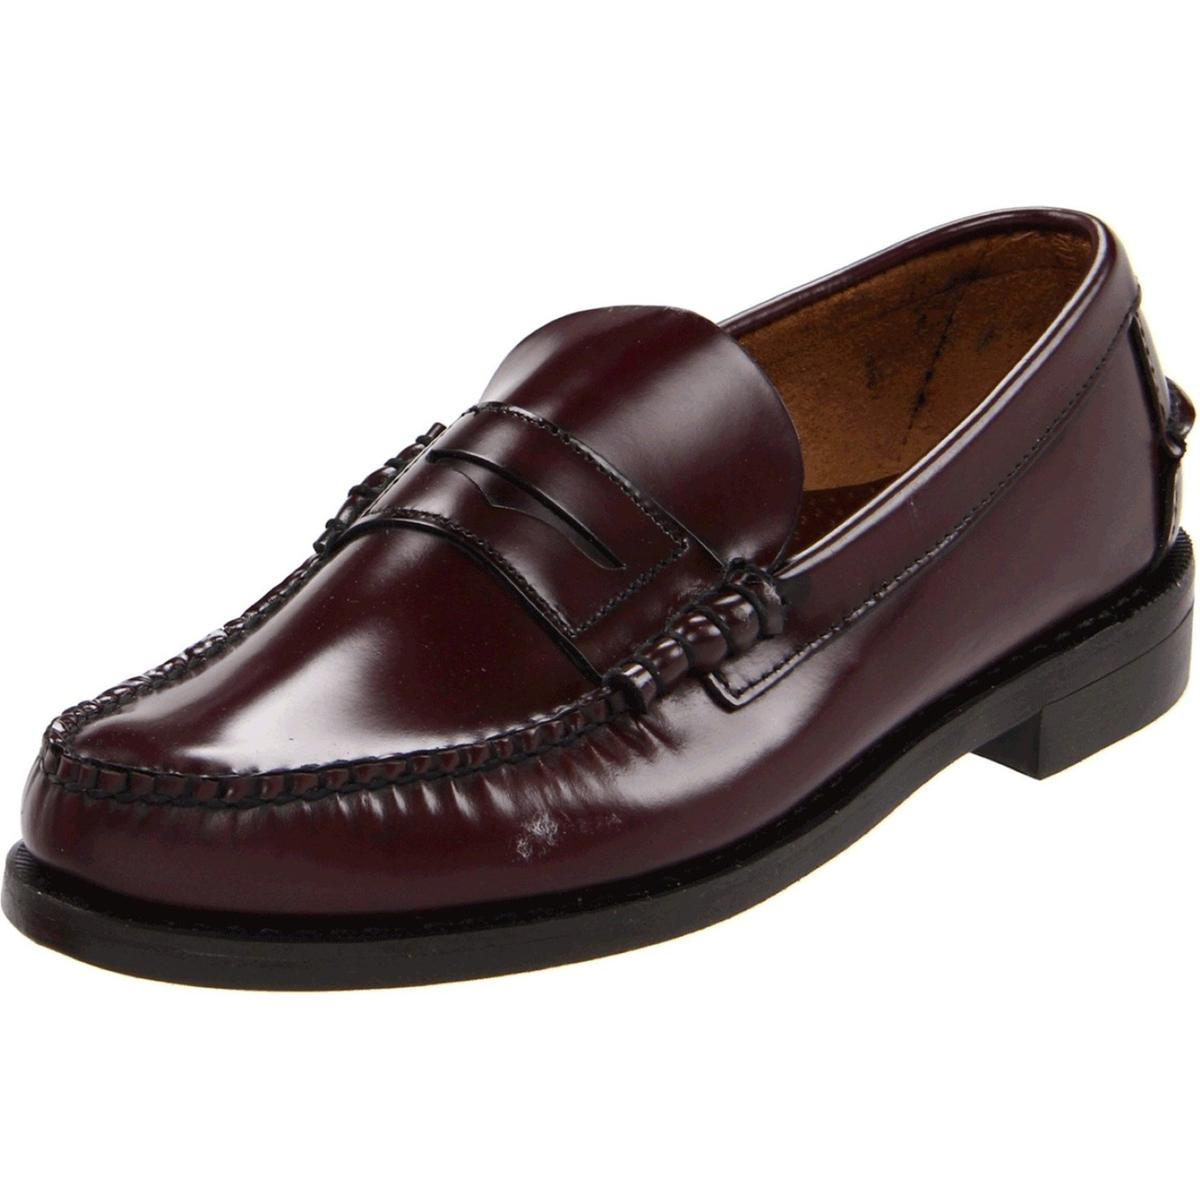 0249baadb4 Details about Sebago Classic Antique Mens Antique Brown Loafers